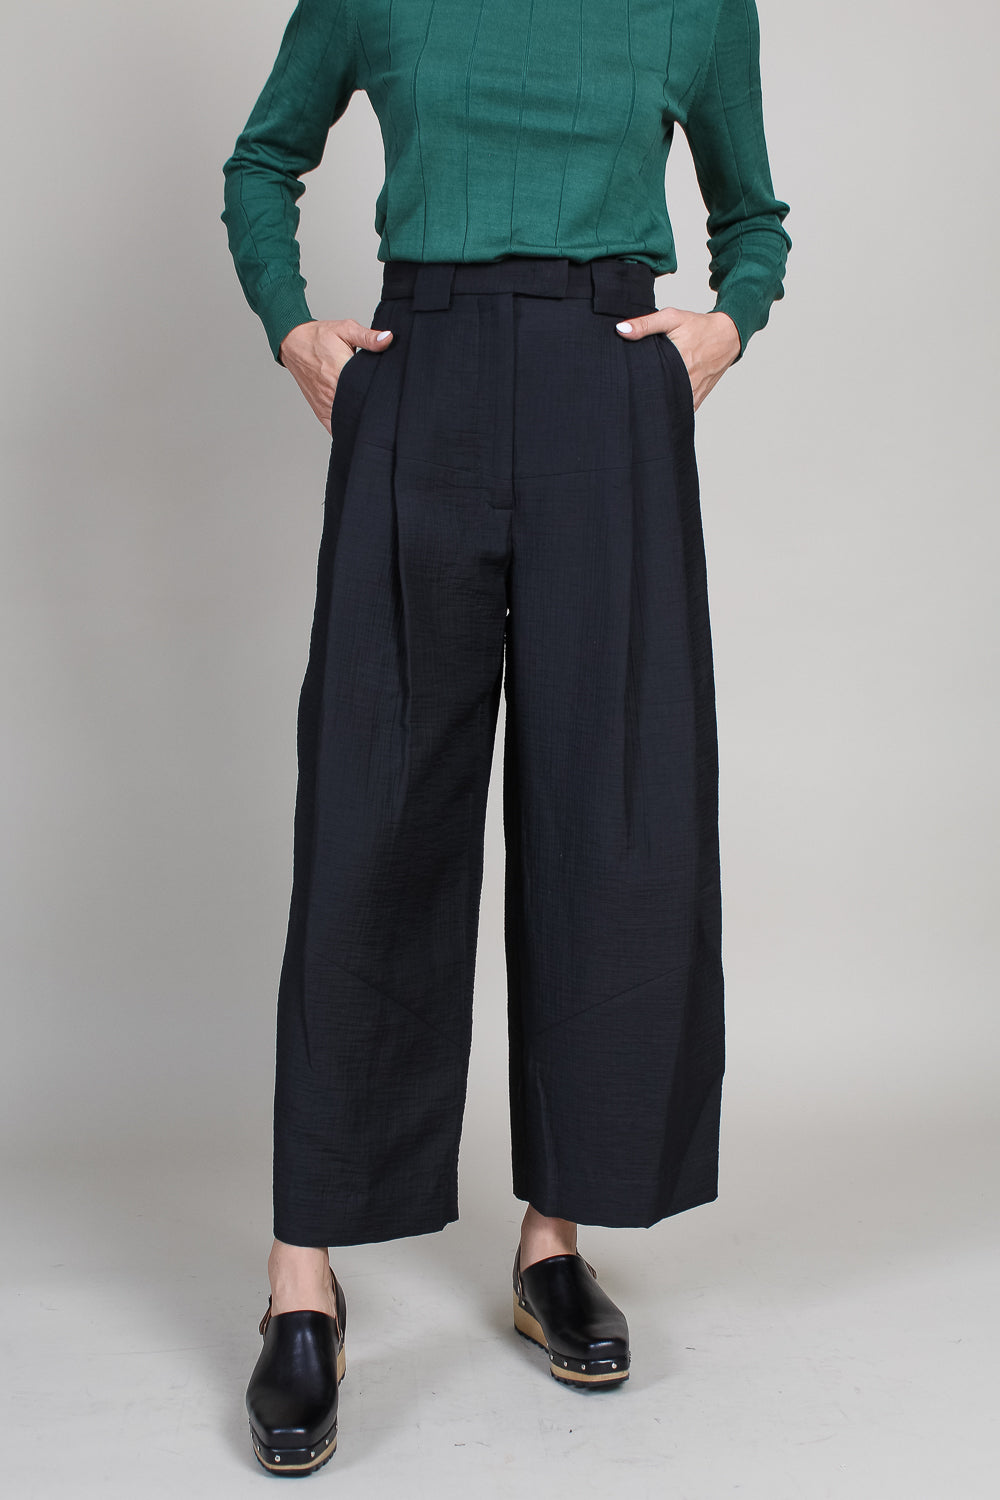 Cropped Divide Pant in Black